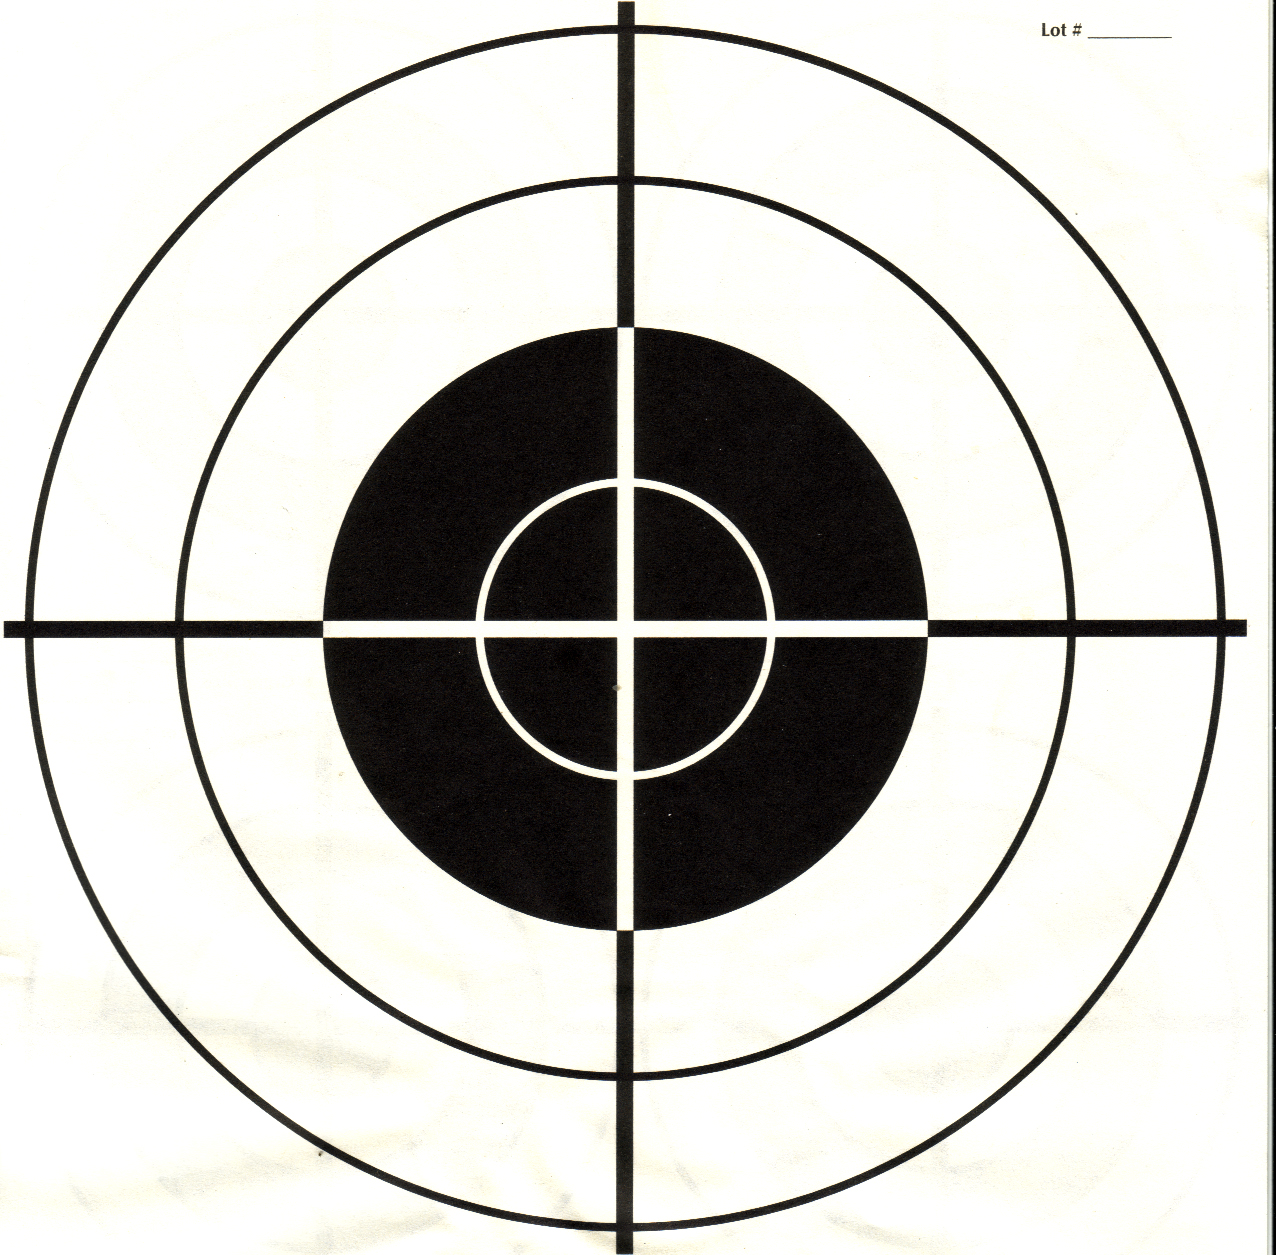 This is an image of Unforgettable Pistol Targets Pdf